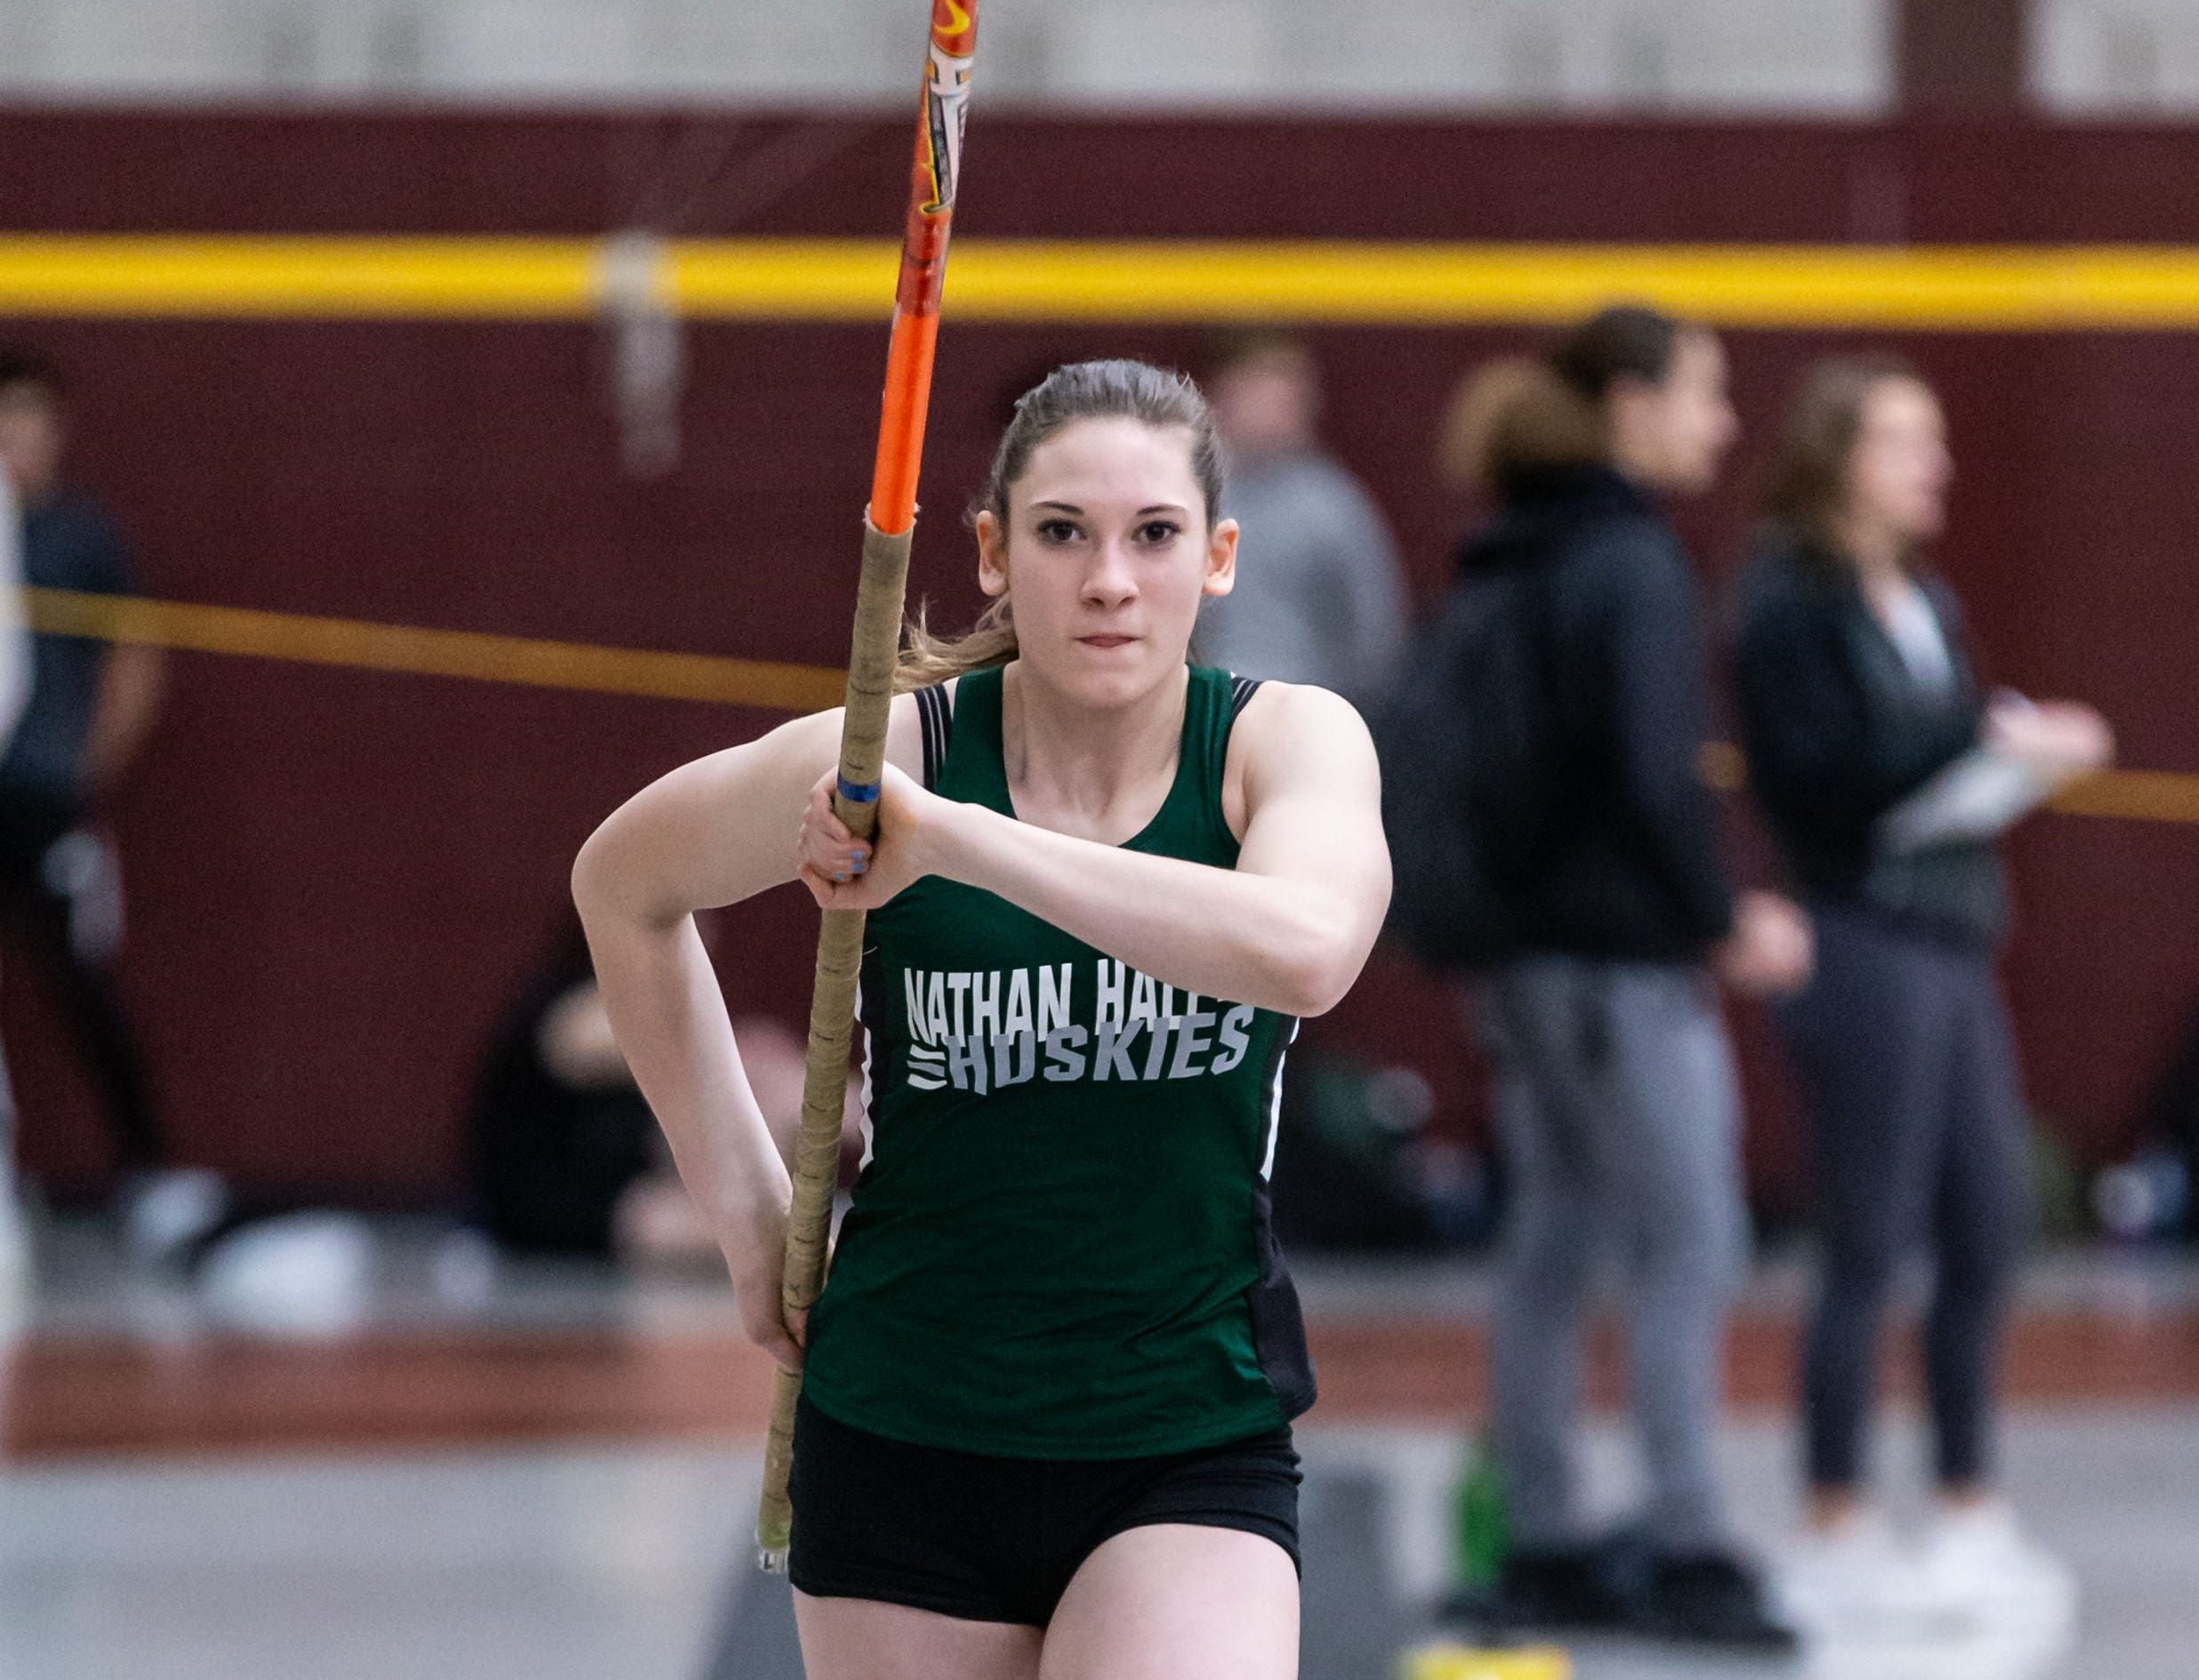 West Allis Nathan Hale's Julia Klein competes on the pole vault at the Reinhard Bulldog Relays hosted by West Allis Central on Friday, March 15, 2019.